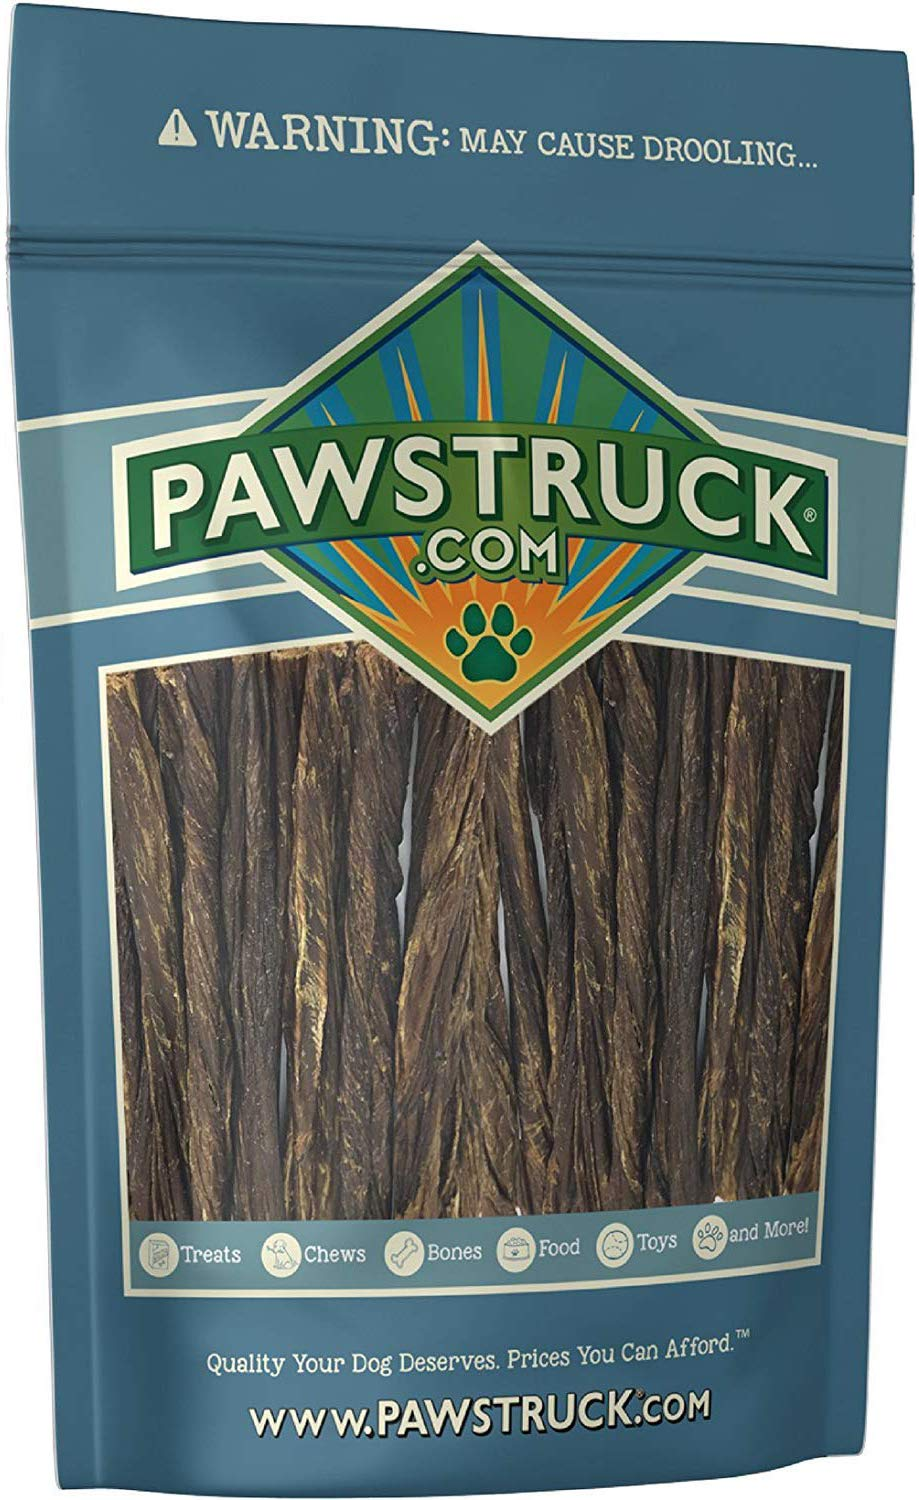 5'' Junior Beef Gullet Bully Sticks for Dogs & Puppies (60 Ct) Natural Odorless Jr. Esophagus Treat | Joint Health & Cleans Teeth | Free-Range Grass-Fed Cattle | Mini Thin Bladder Jerky Chew Steer Stix by Pawstruck